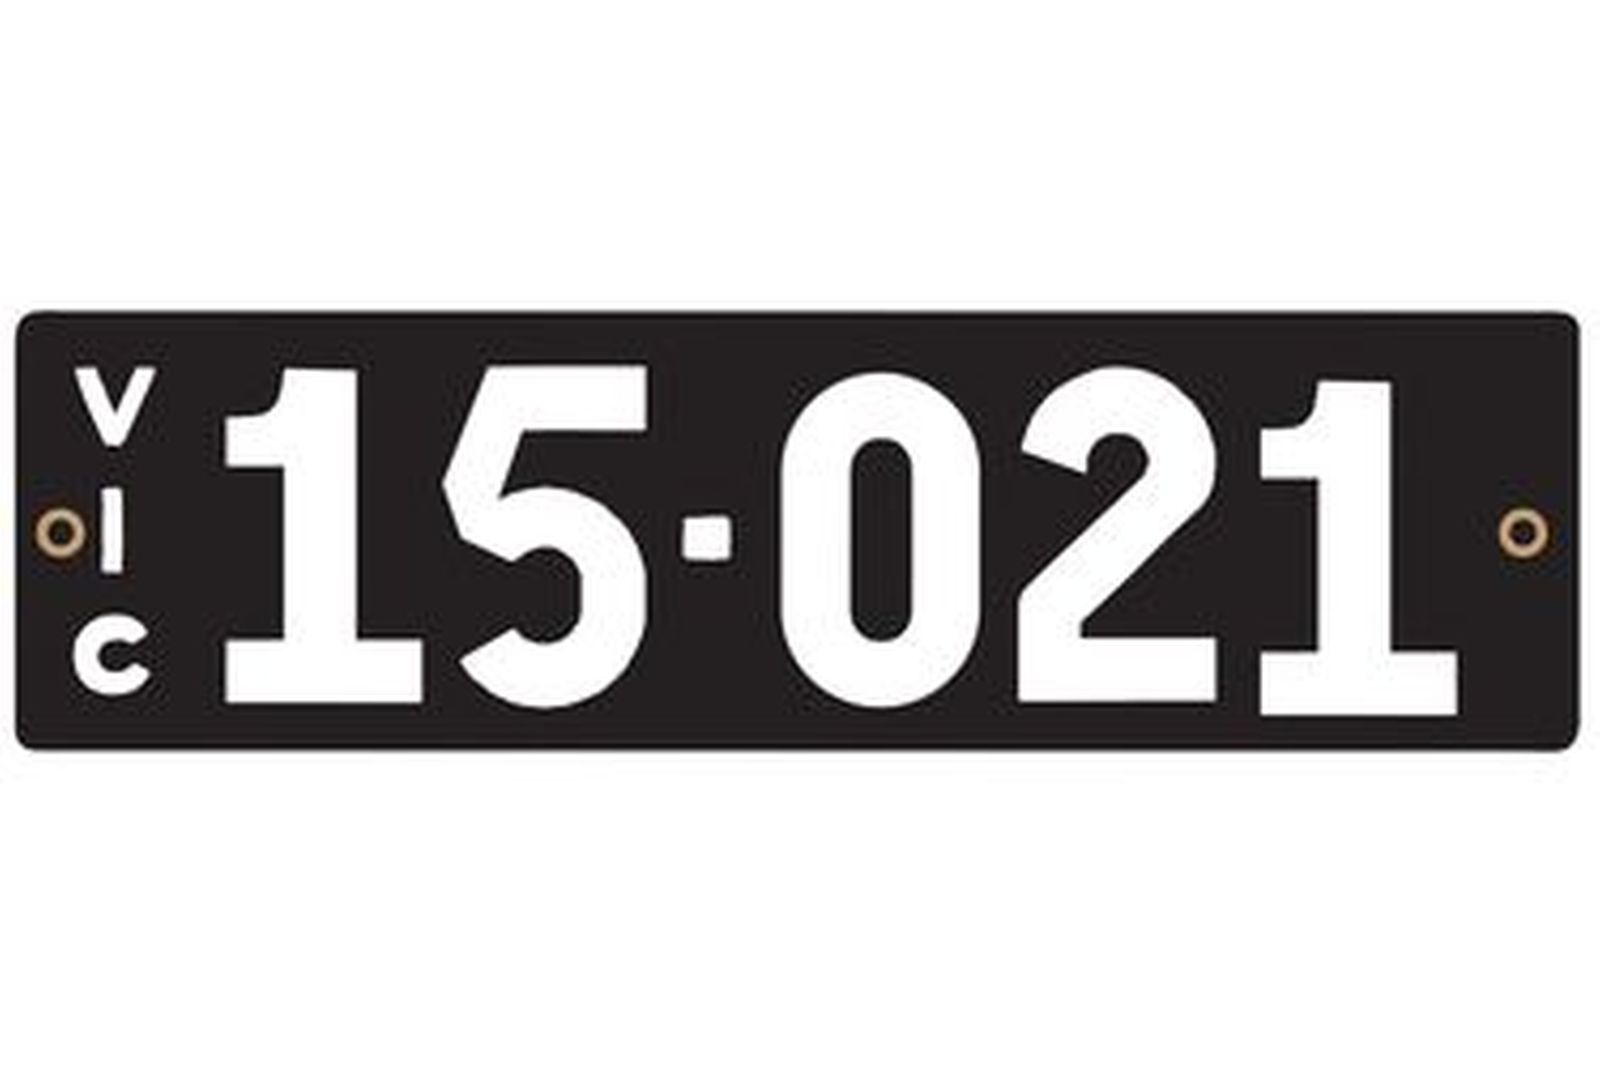 Victorian Heritage Numerical Number Plate - 15.021